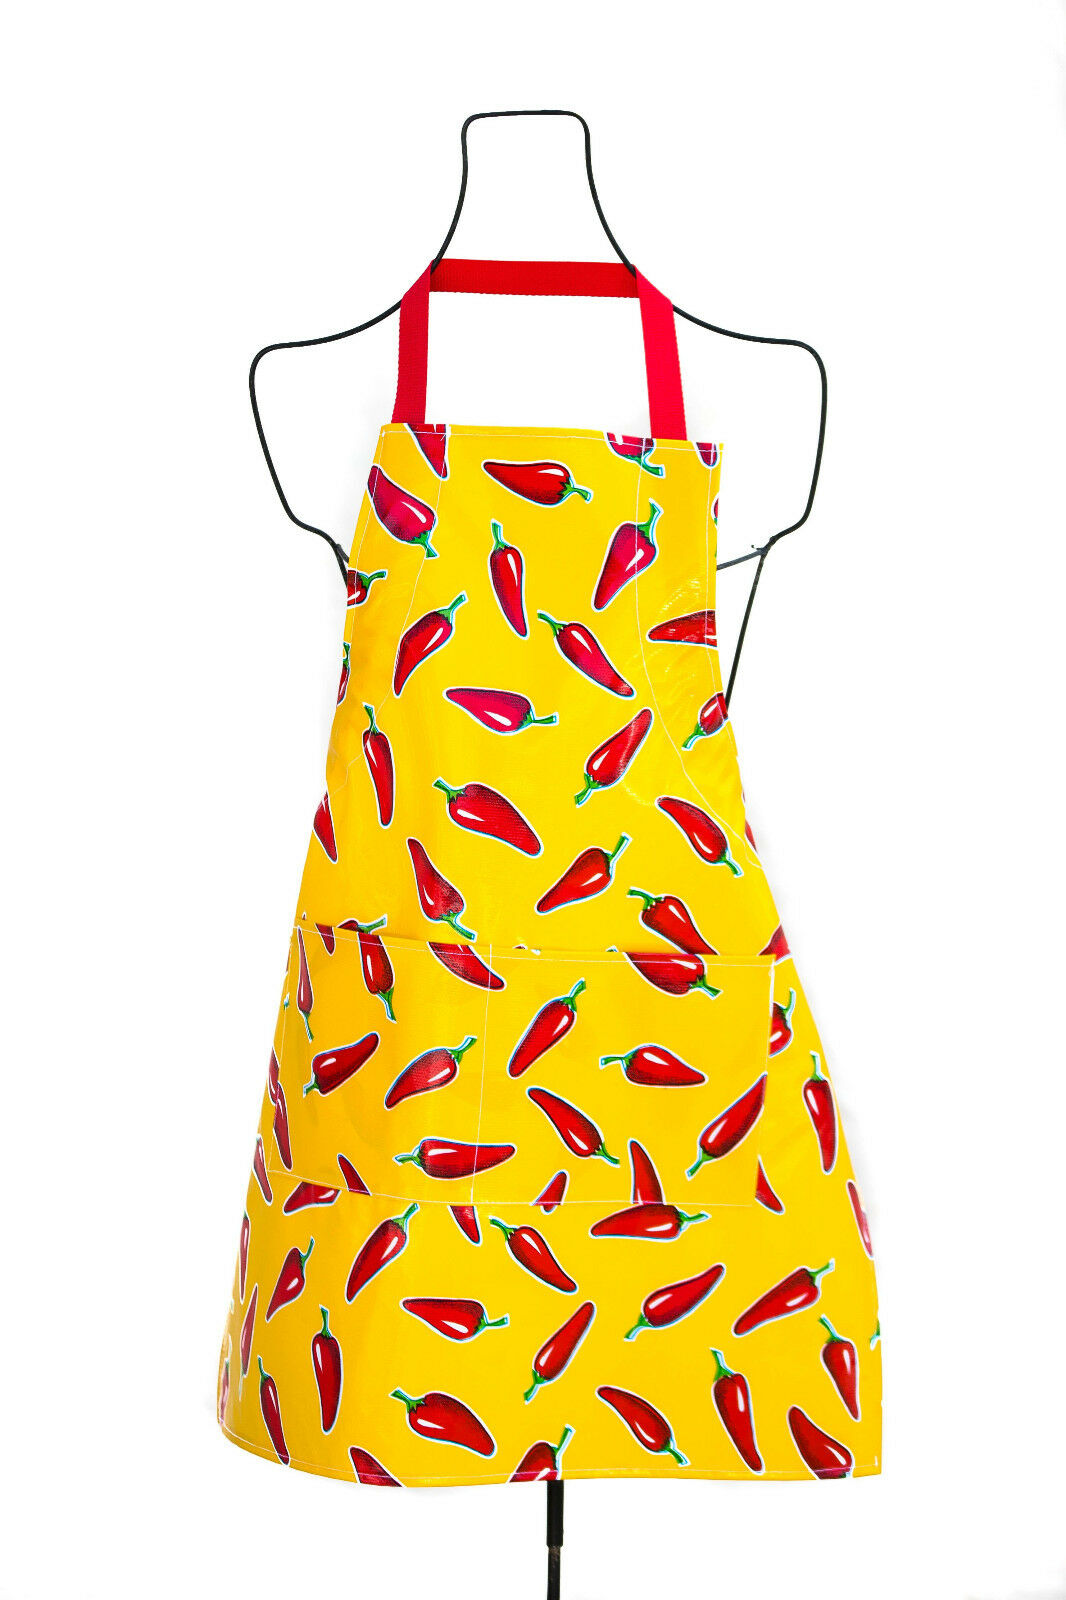 OilCloth International Red Chili Pepper Yellow Adult Size Bi